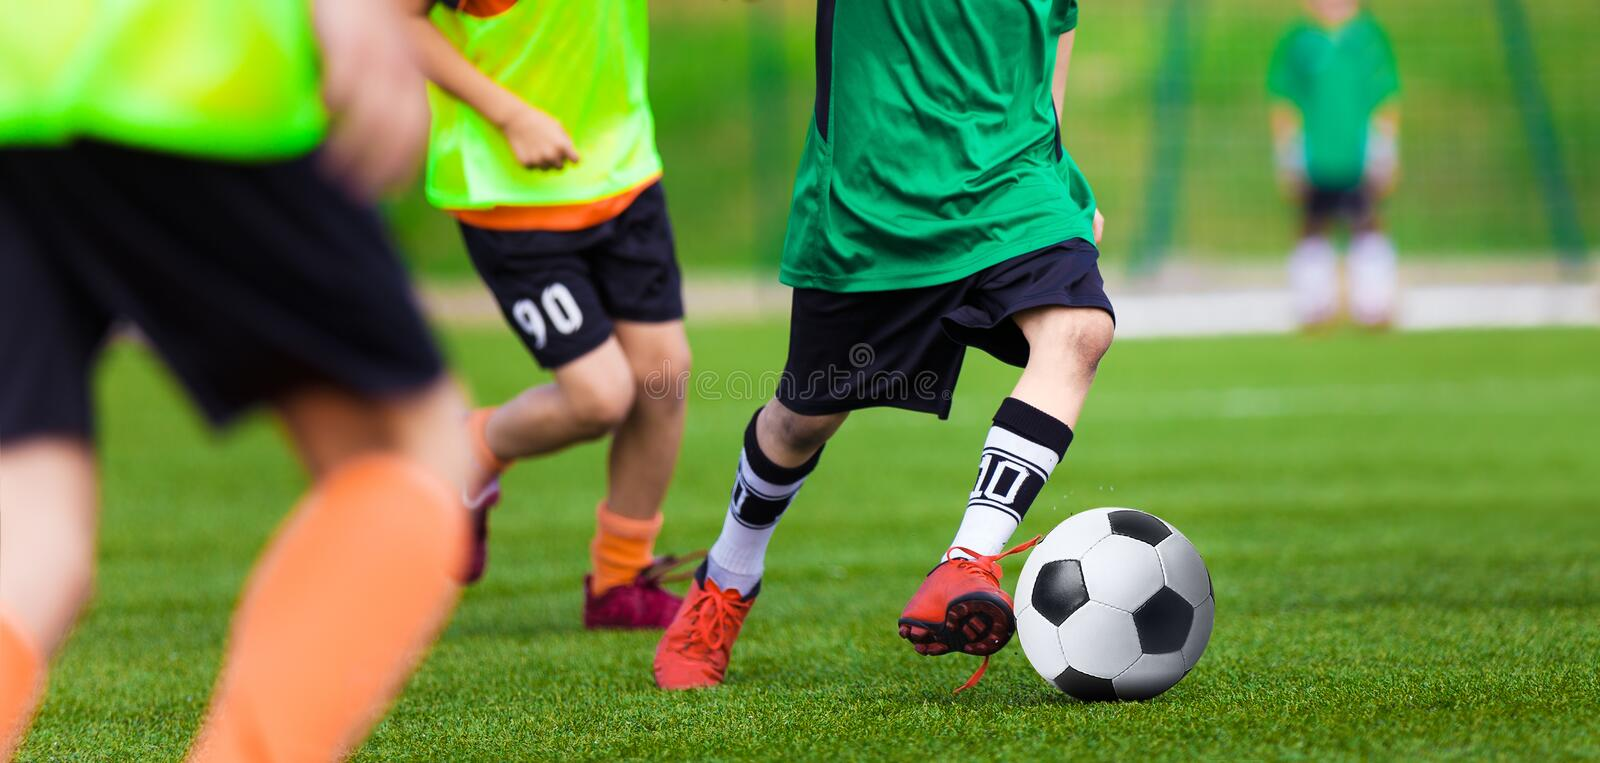 Kids Playing Football Soccer Game on Sports Field. Boys Play Soccer Match. On Green Grass. Youth Soccer Tournament Teams Competition. Running Youth Football royalty free stock photos